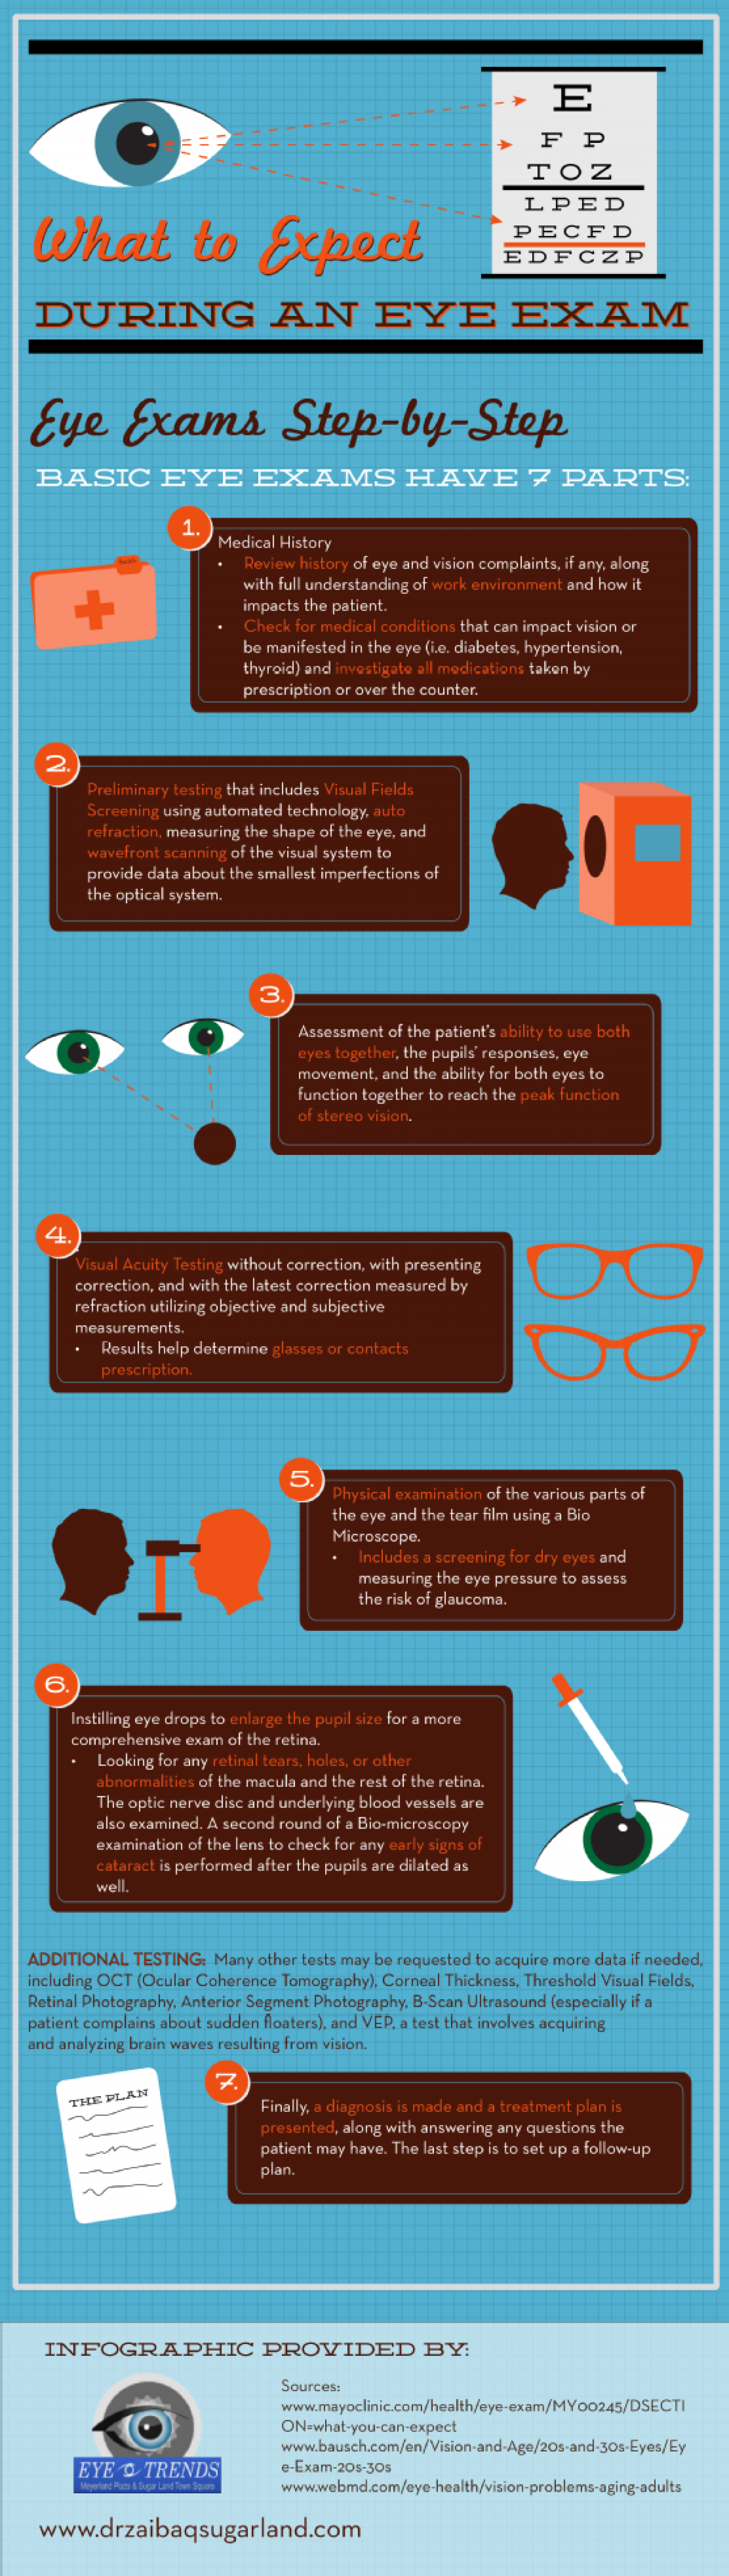 What to Expect During an Eye Exam Infographic